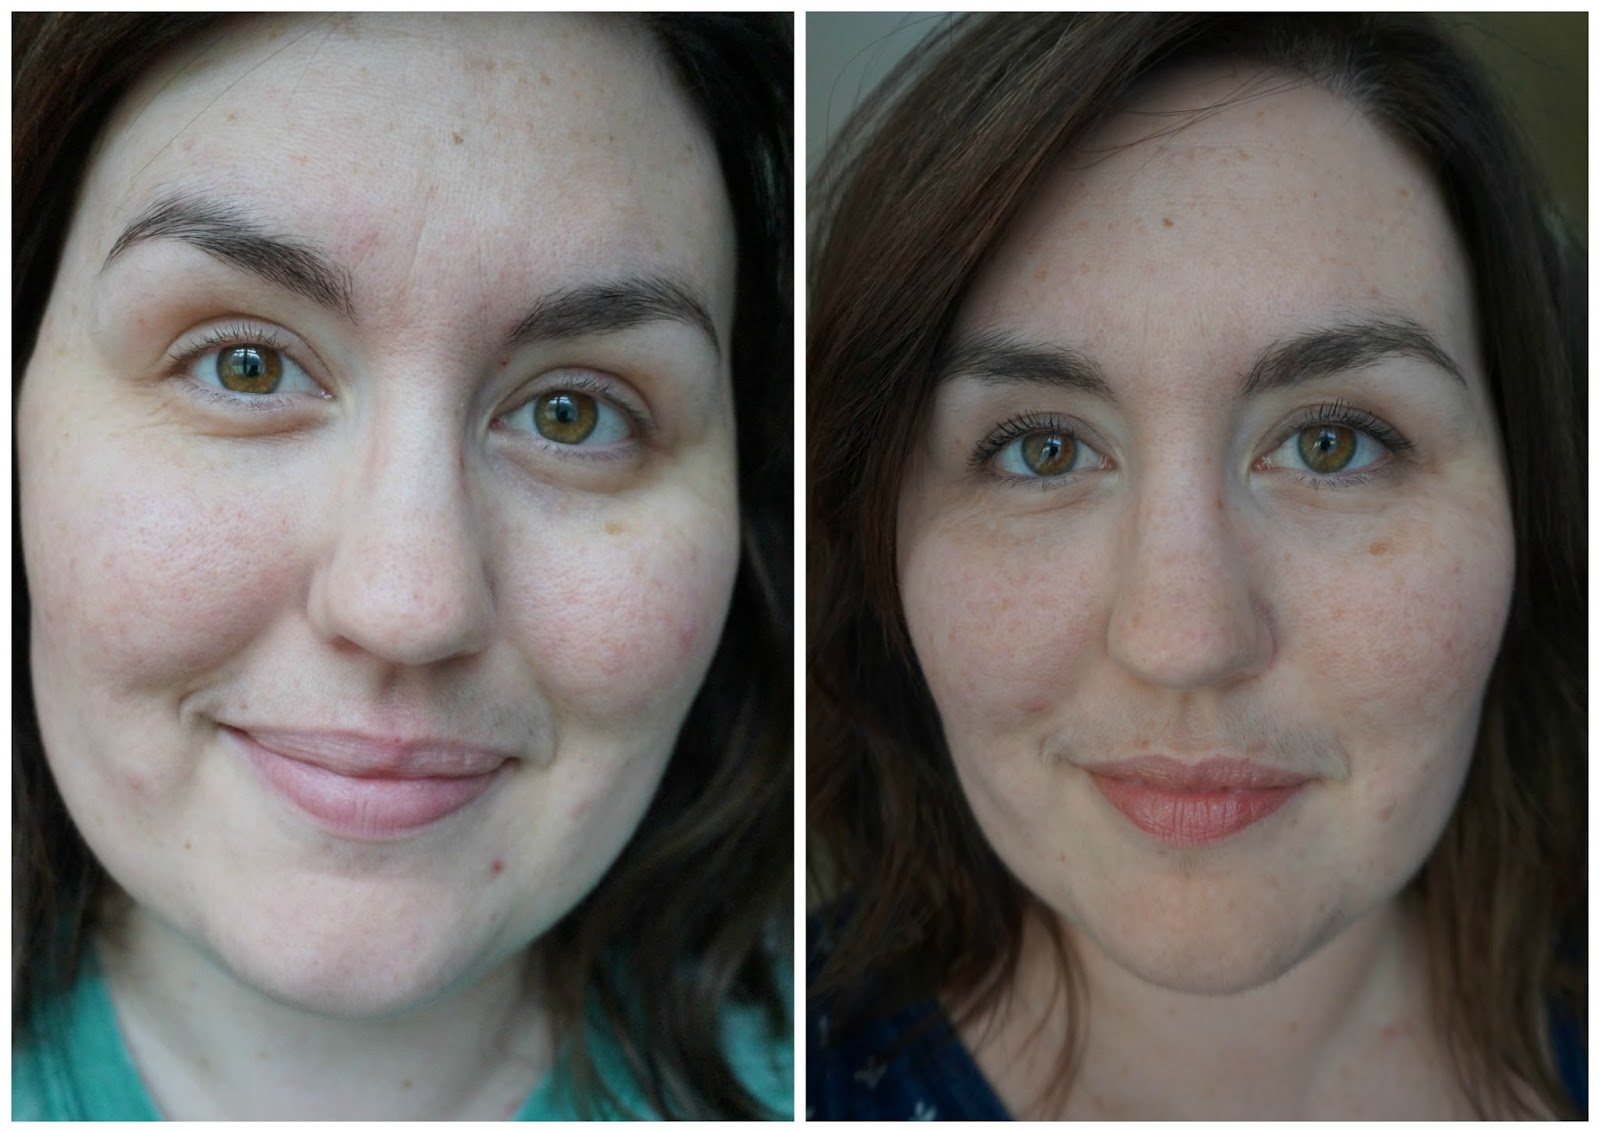 Conture Review - Conture Kinetic Skin Toning System: One Month Results by popular North Carolina beauty blogger Rebecca Lately